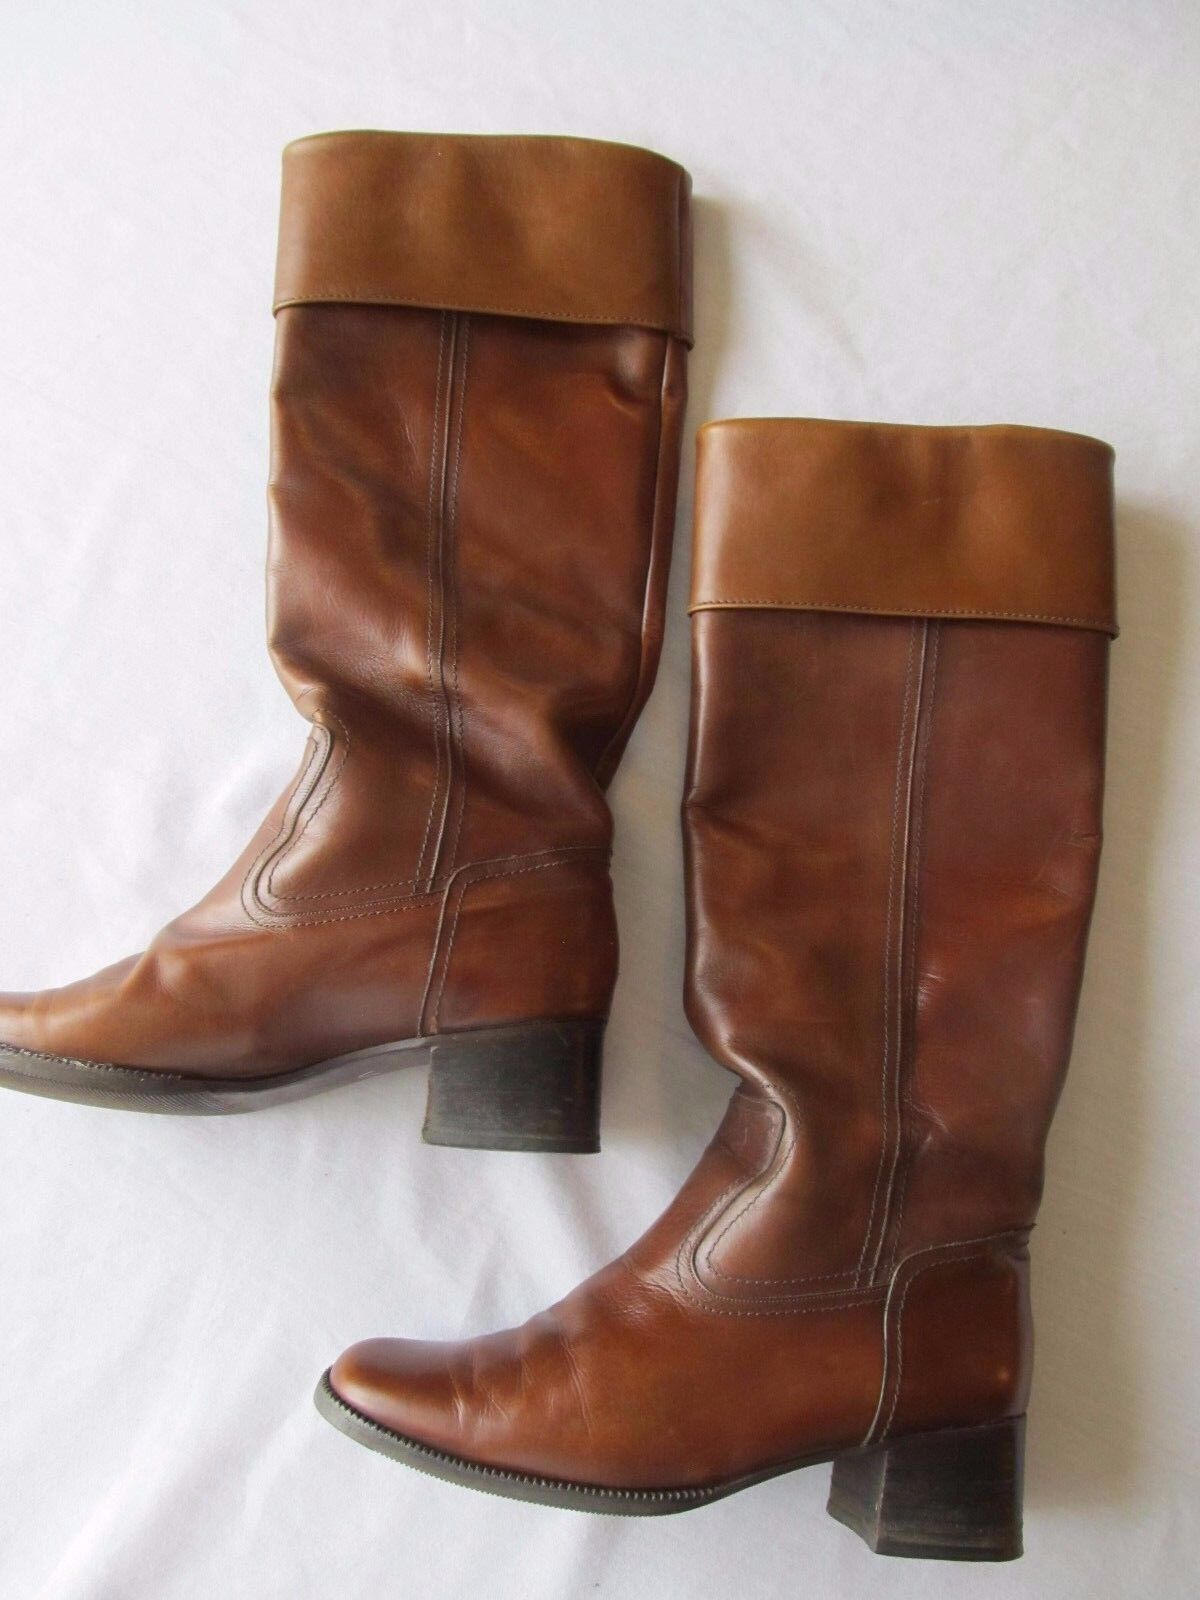 À Manches Longues Ayres Femme Bottes en cuir marron taille 7.5 N Made in France